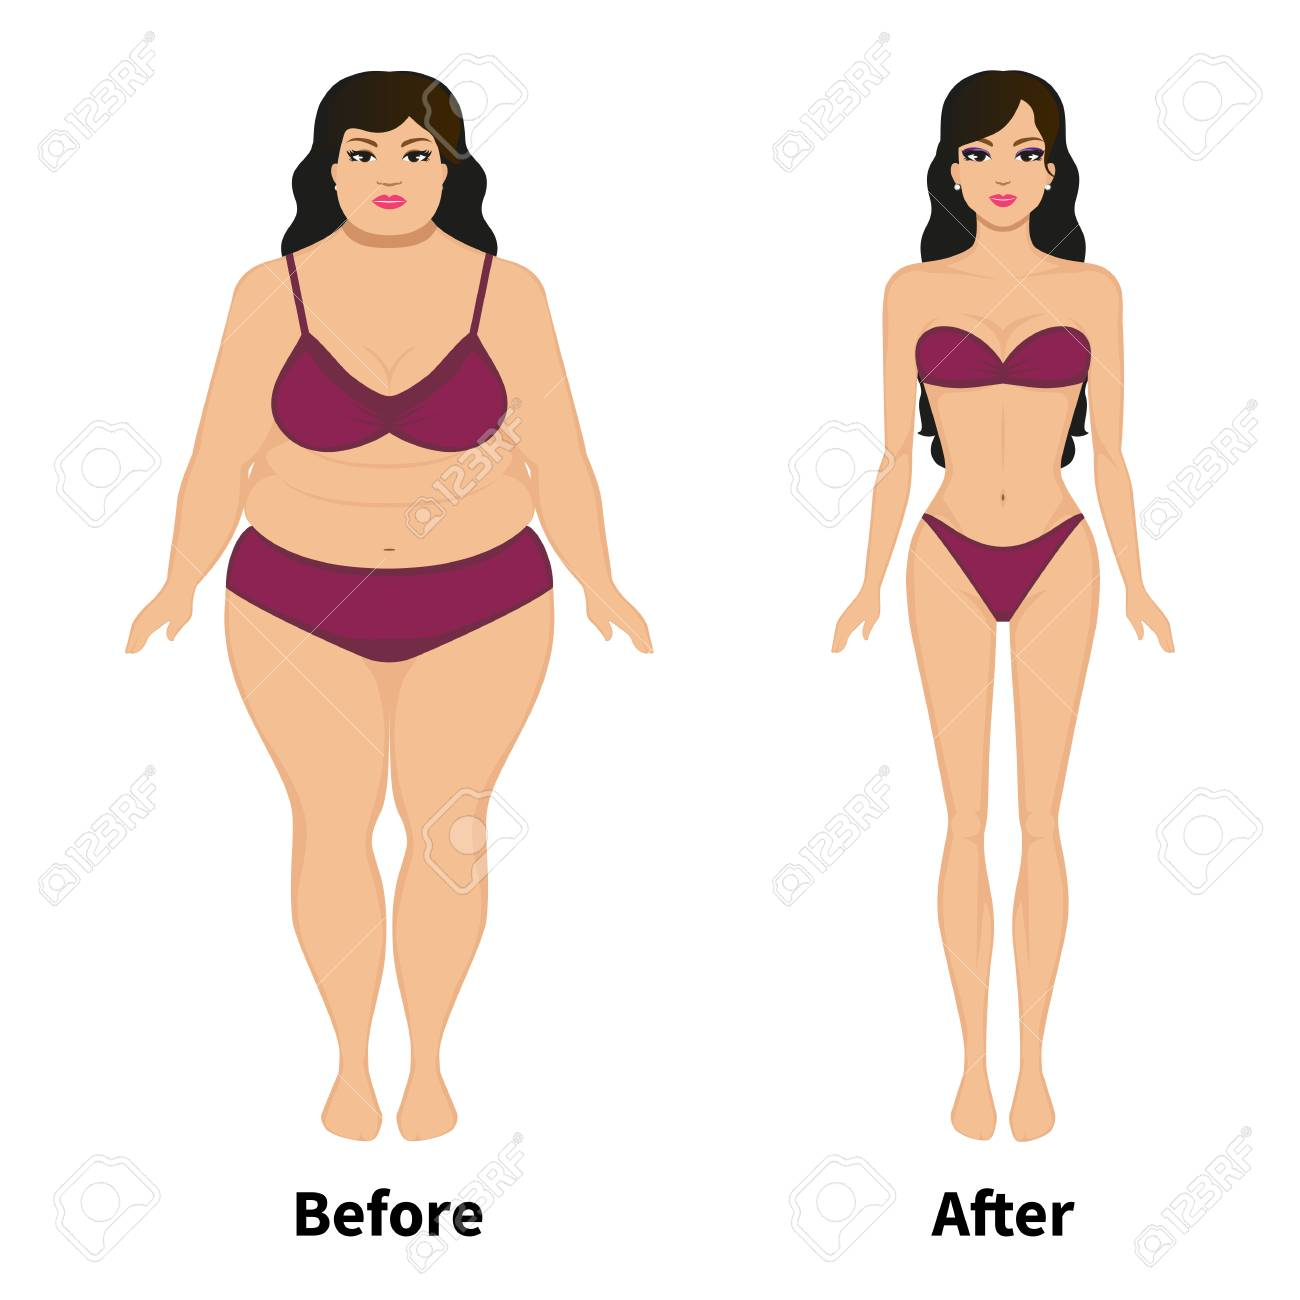 Vector Woman Before And After Weight Loss Royalty Free Cliparts Vectors And Stock Illustration Image 70563995